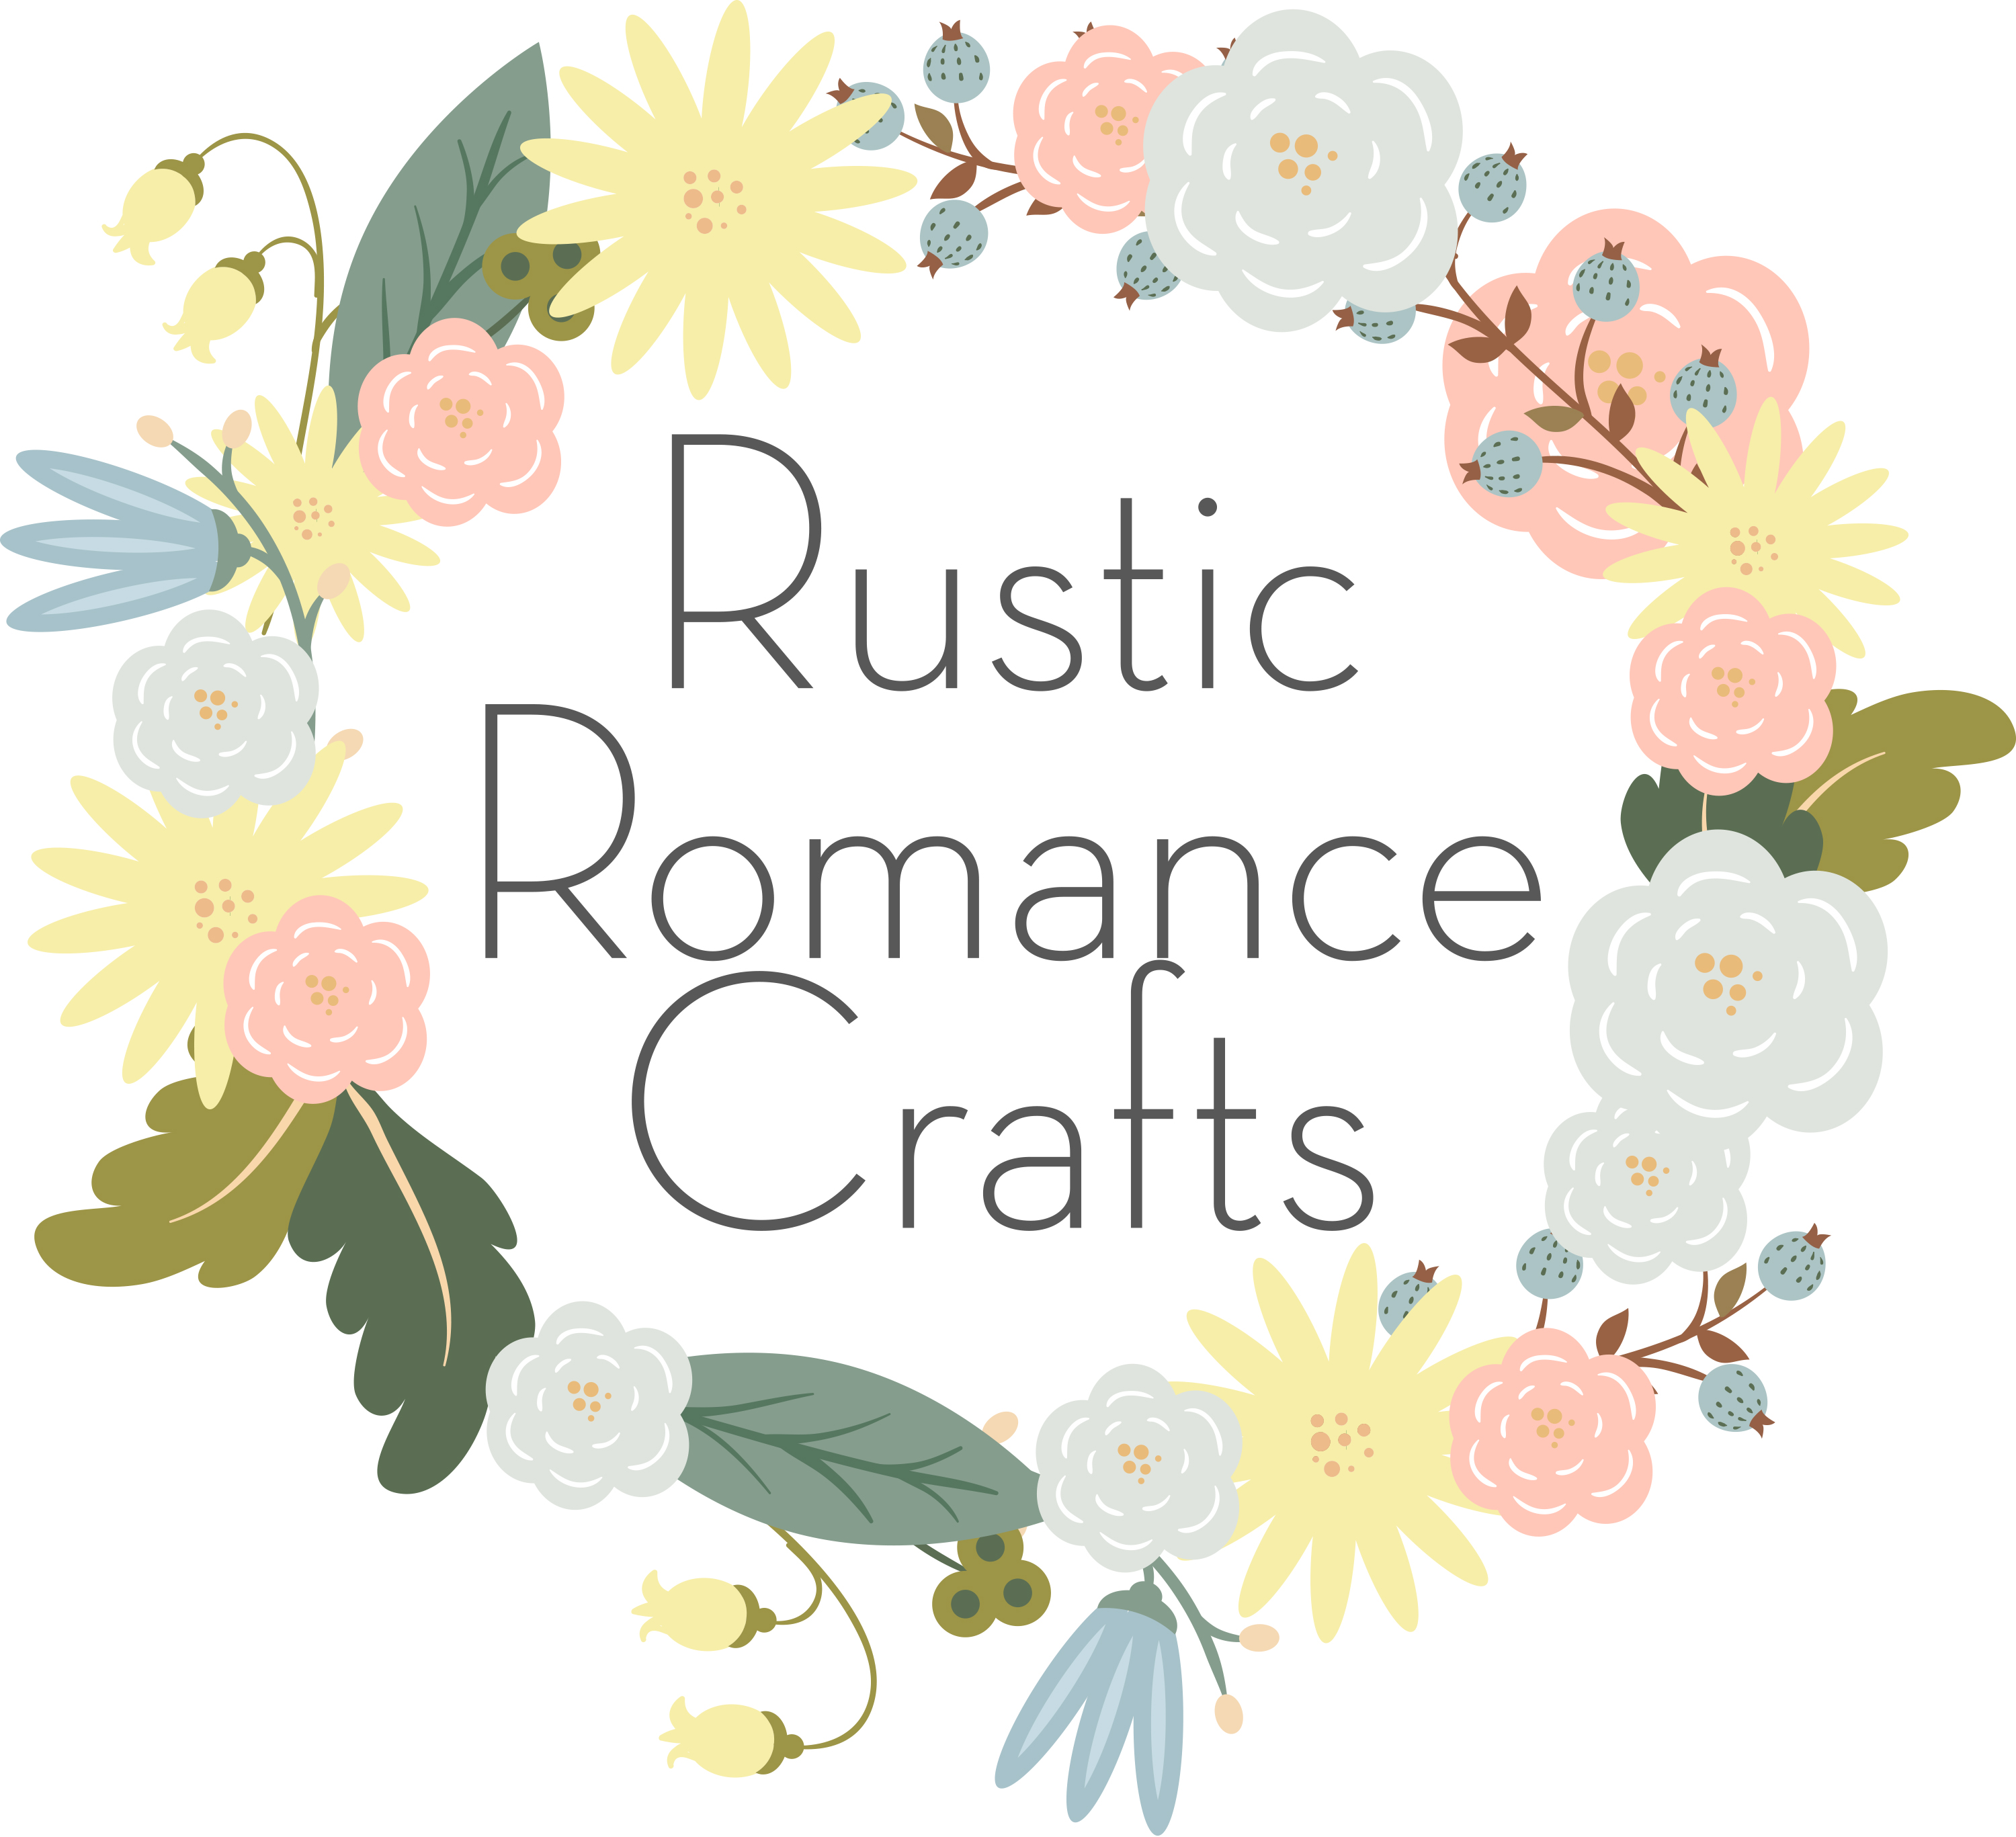 rustic romance crafts (1)